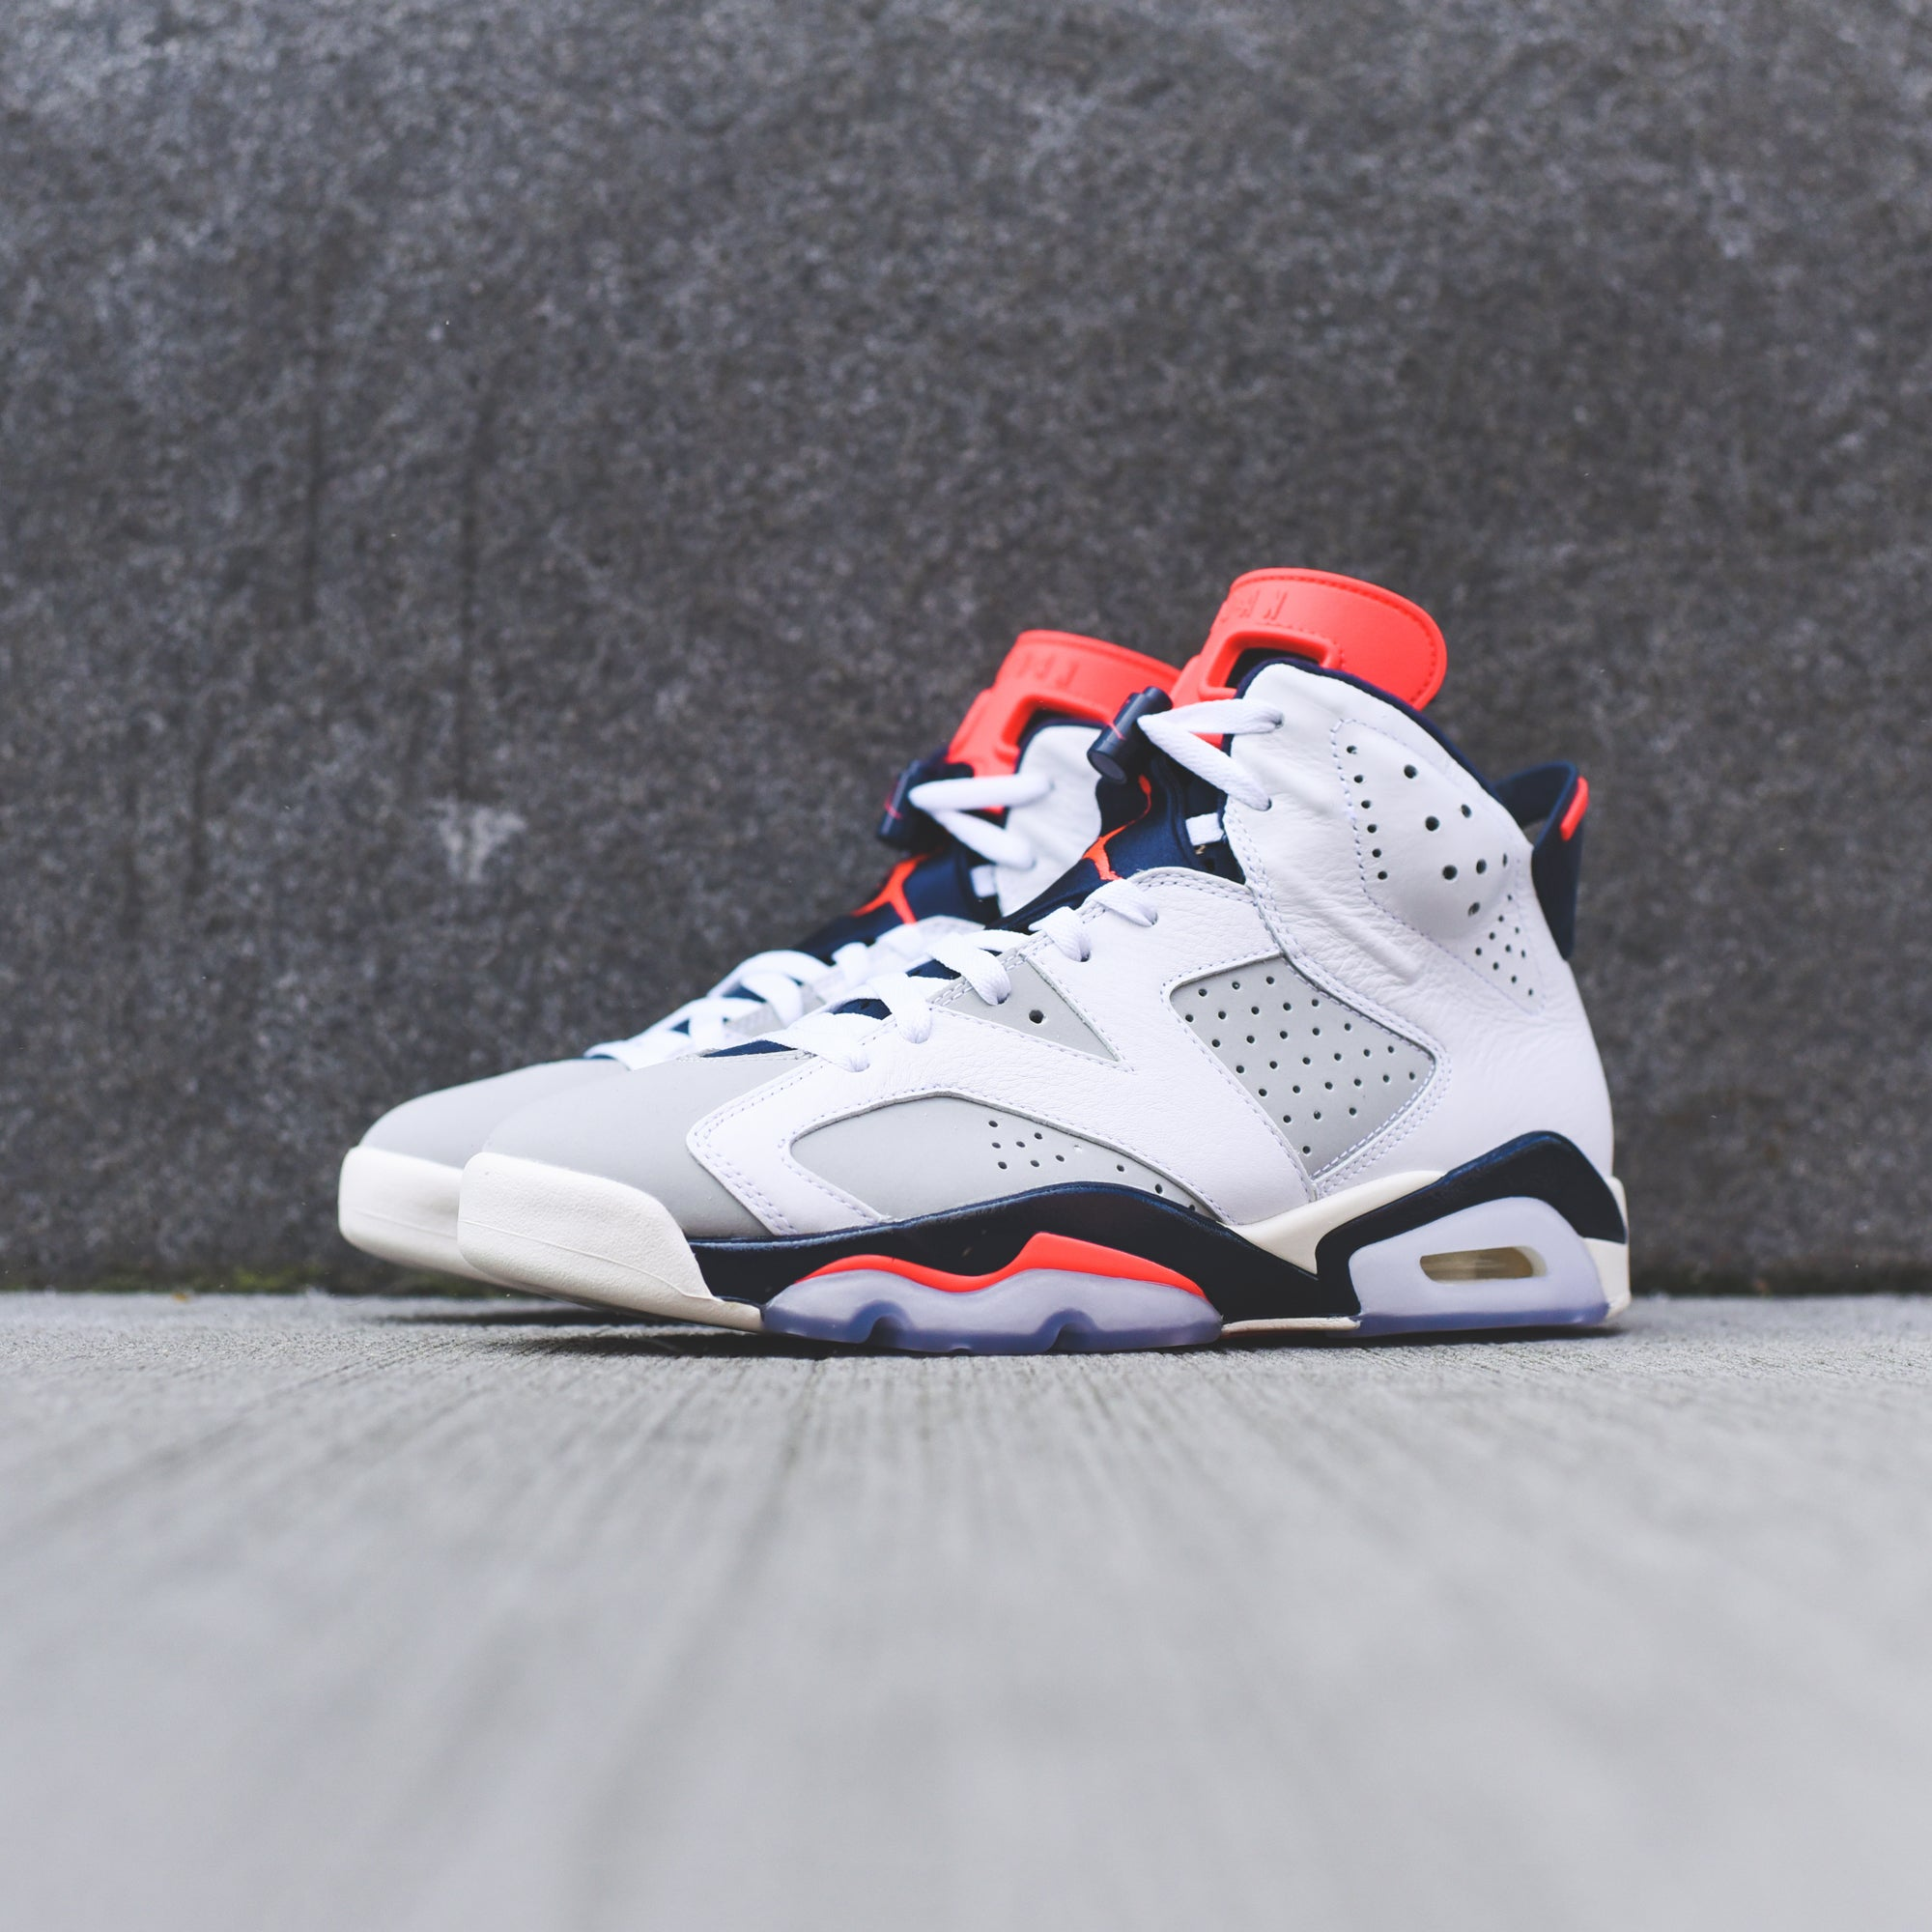 brand new d66db 0a223 ... top quality nike air jordan 6 retro white infrared neutral grey f300d  67e8b